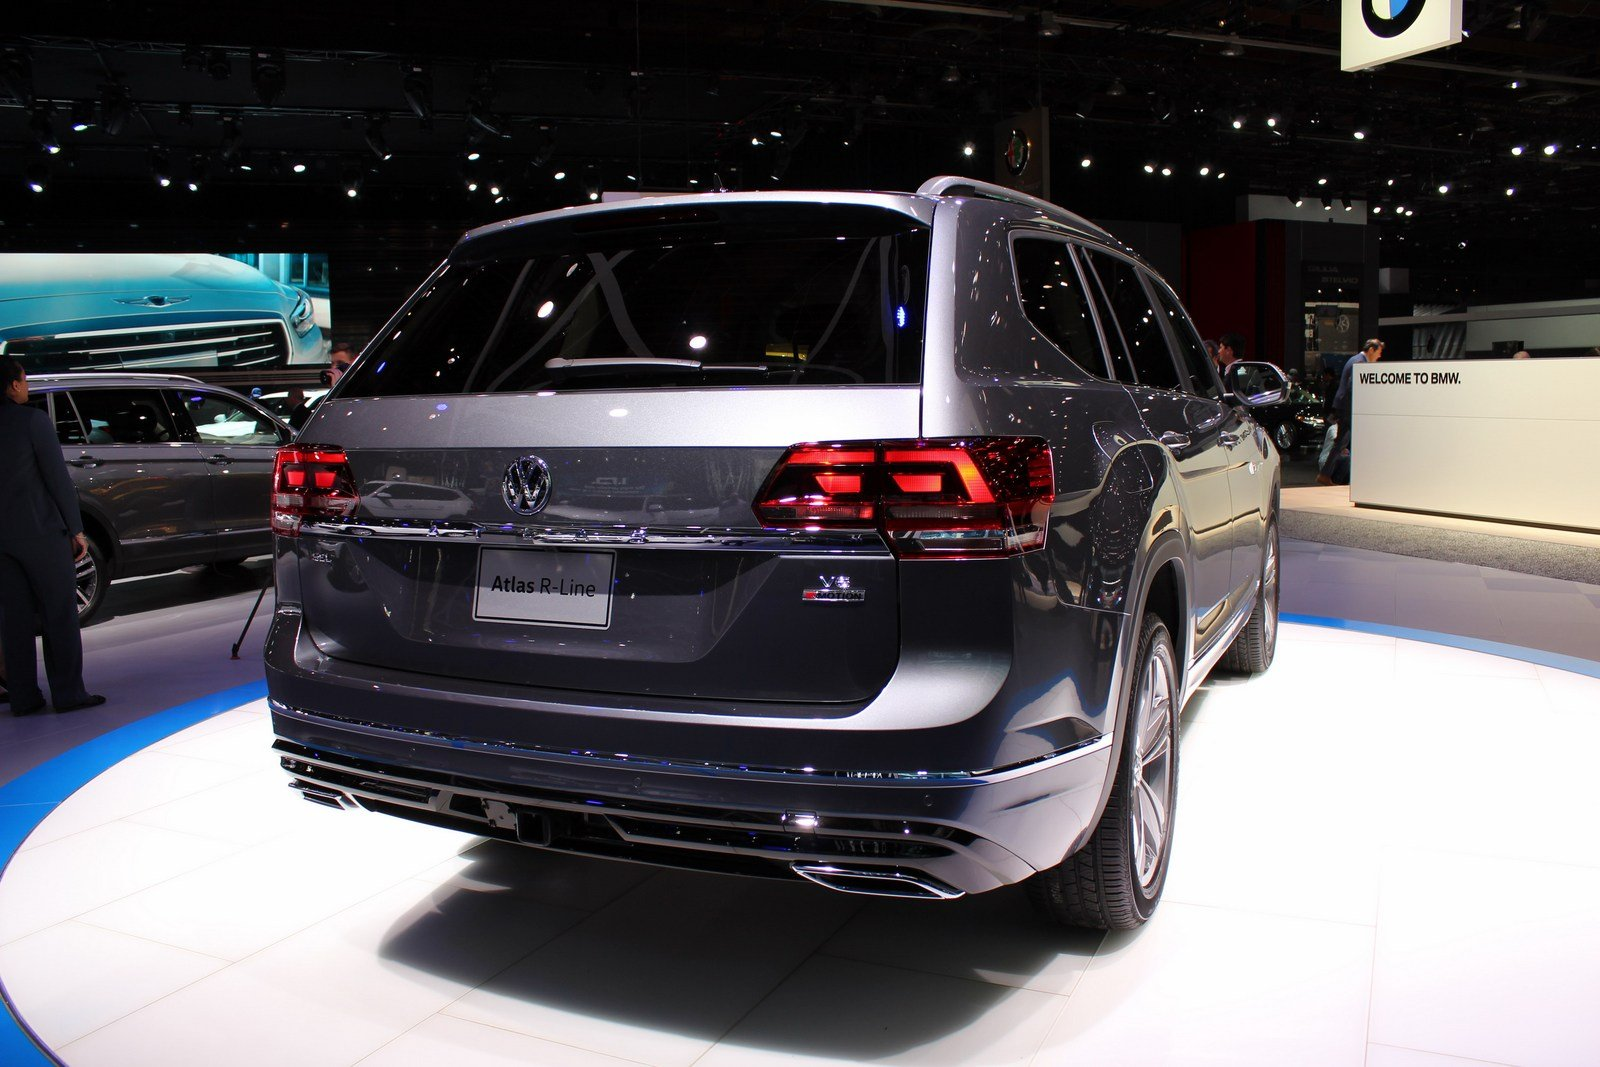 2017 volkswagen atlas r line picture 701064 car review top speed. Black Bedroom Furniture Sets. Home Design Ideas